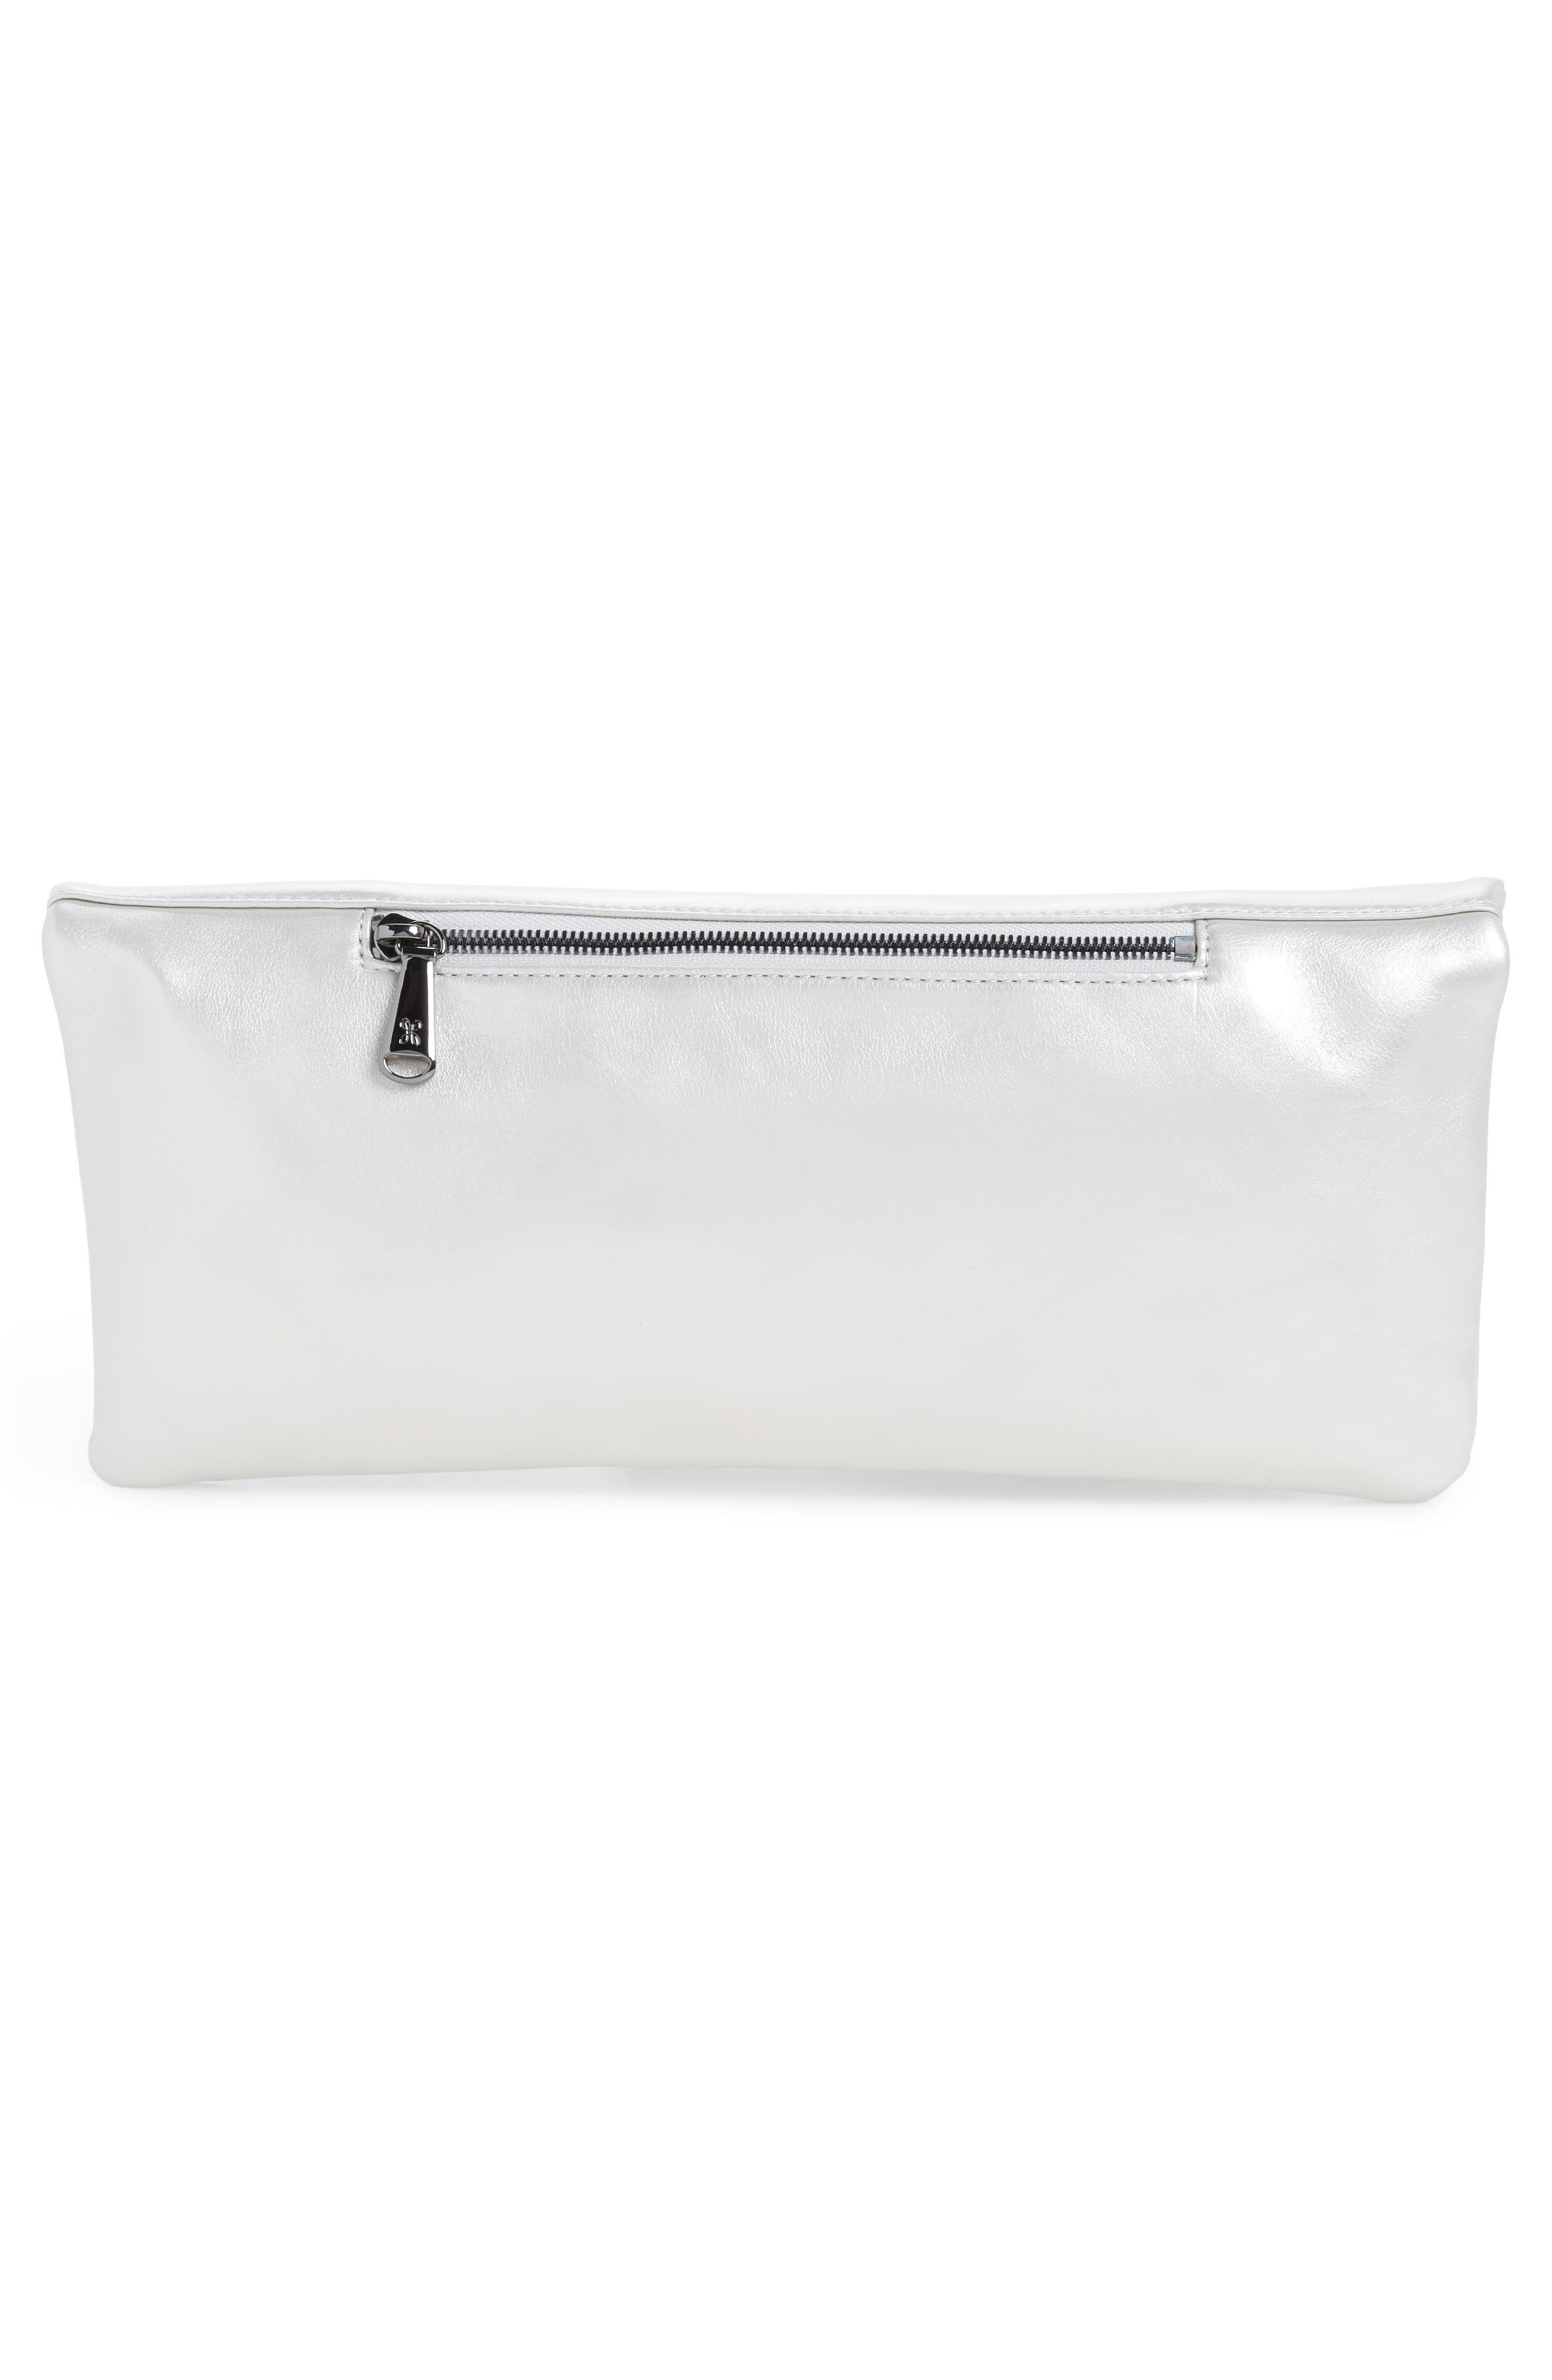 Raine Calfskin Leather Foldover Clutch,                             Alternate thumbnail 9, color,